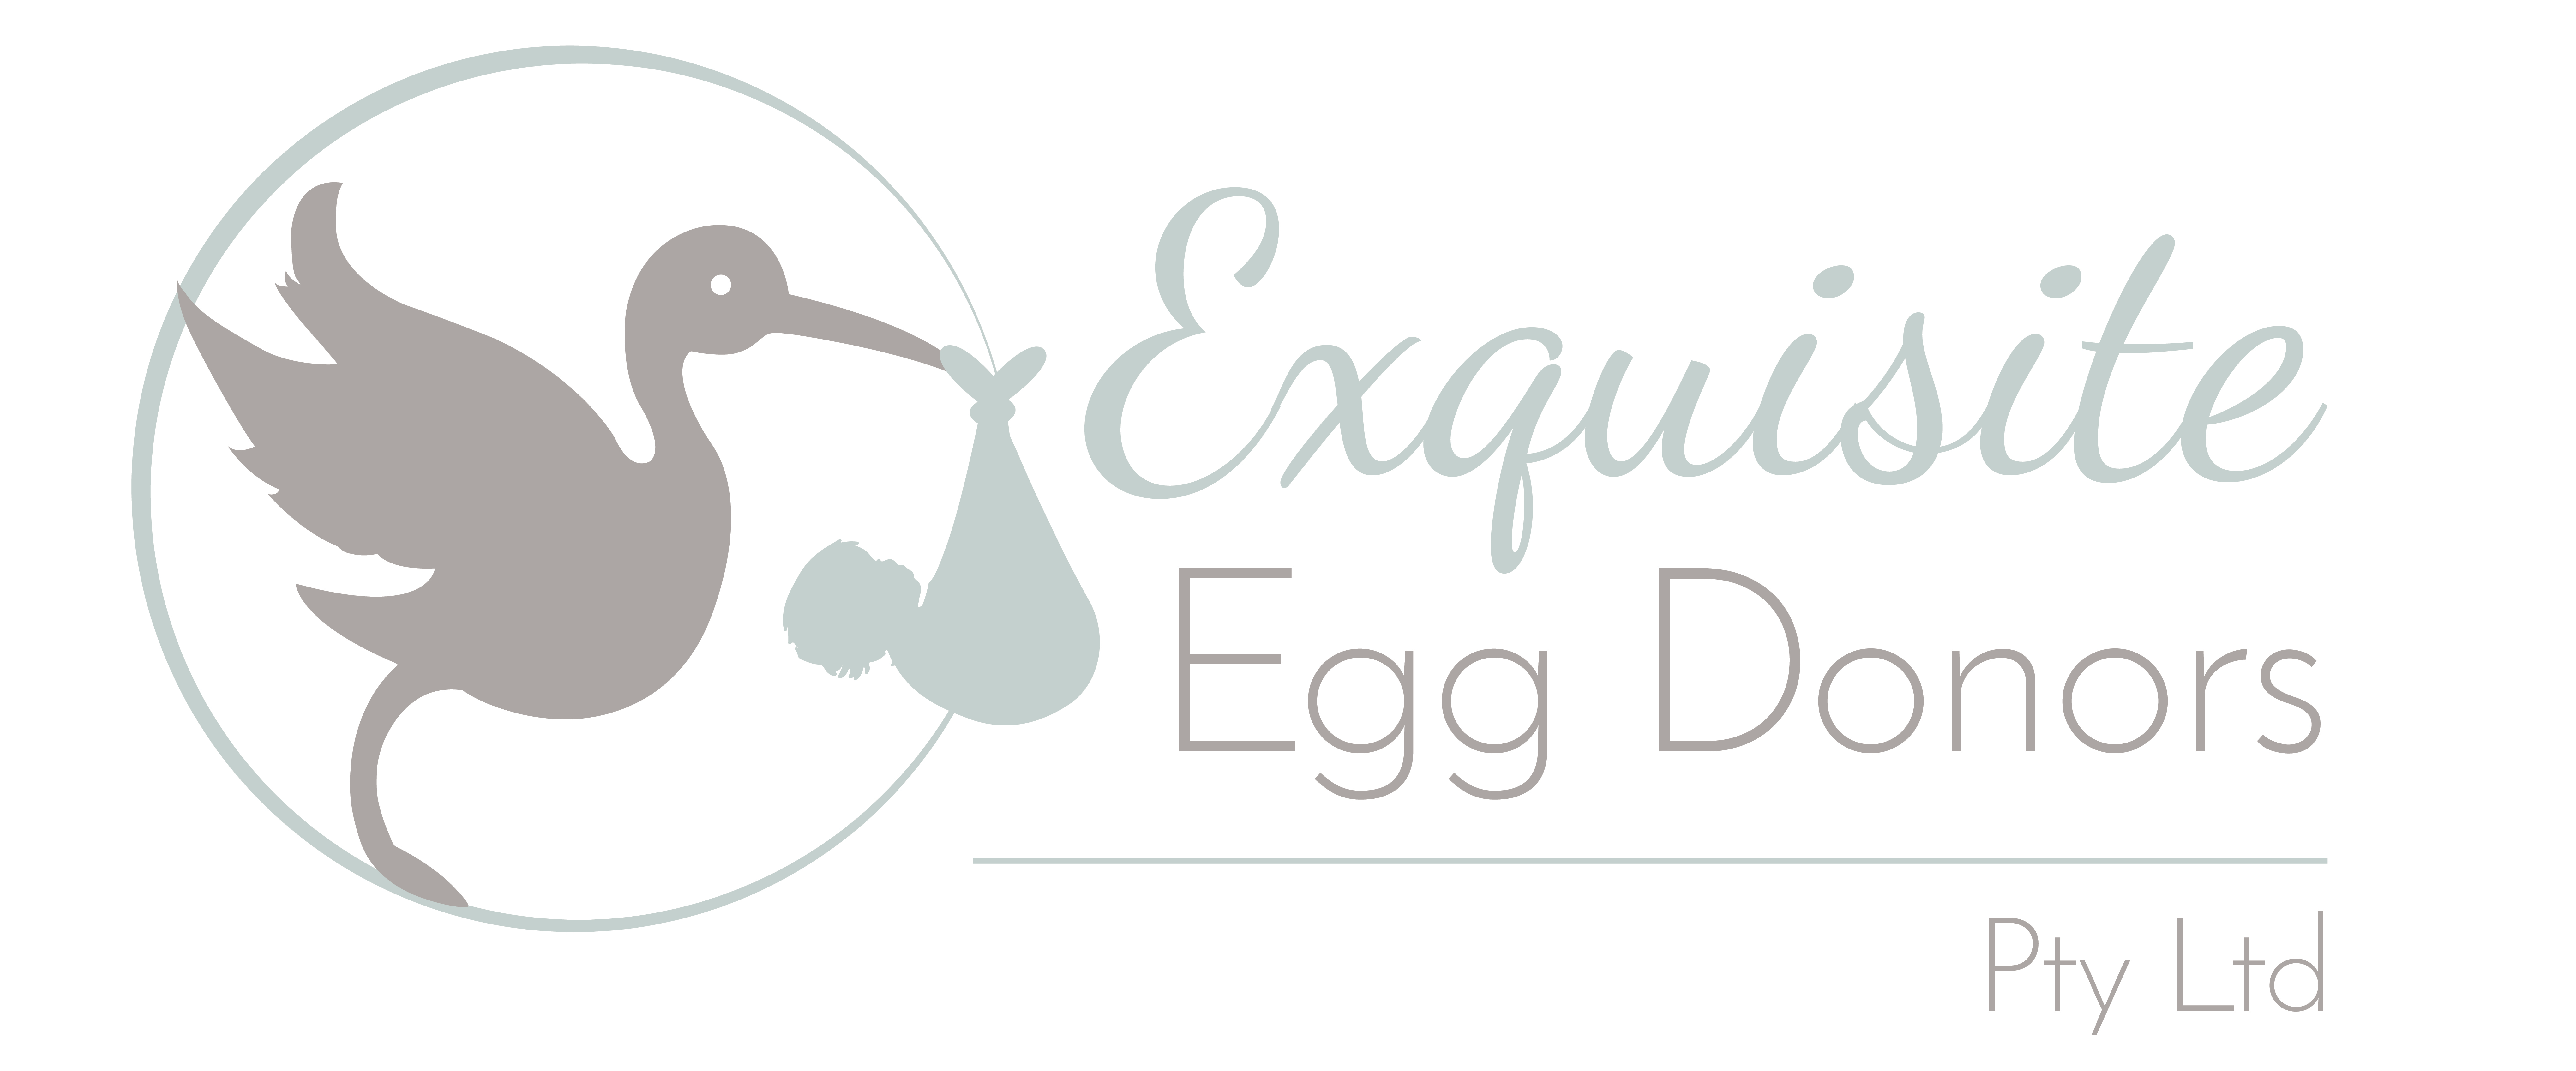 Exquisite Egg Donors